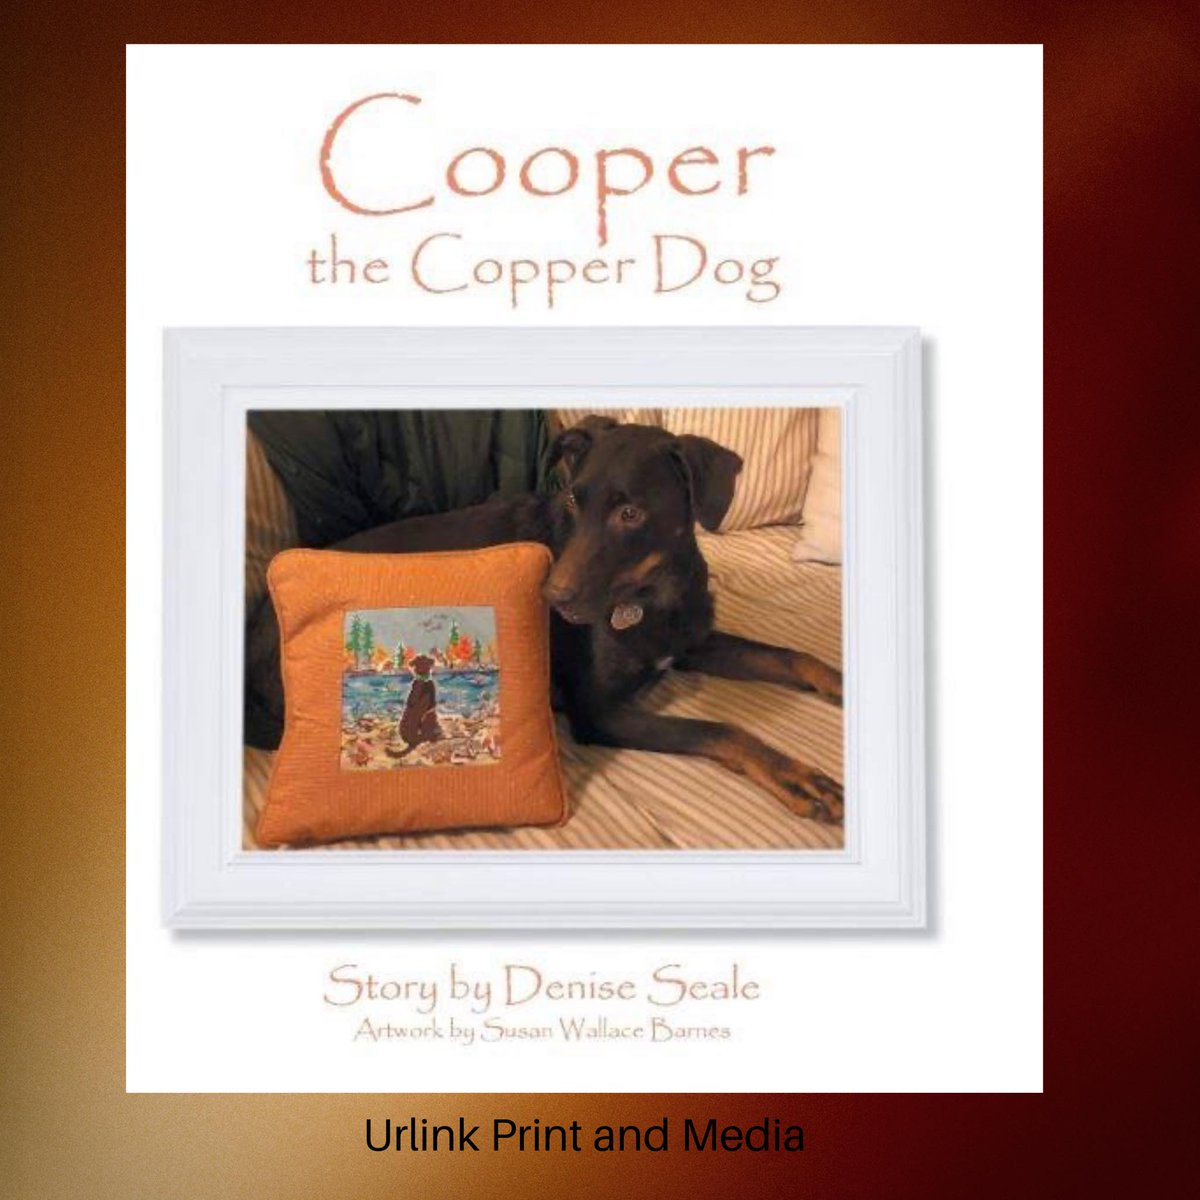 Cooper the Copper Dog on one of his many adventures. Needlepoint Artwork (c) by Susan Wallace Barnes Story by Denise Seale (c) 2018 #UrlinkPrintandMedia #UrlinkPublishing #Book #books #instabook #bookworm #bookaholic #booklover #booktography #Friday https://amzn.to/30H6B7lpic.twitter.com/R7Hg6L7qyV